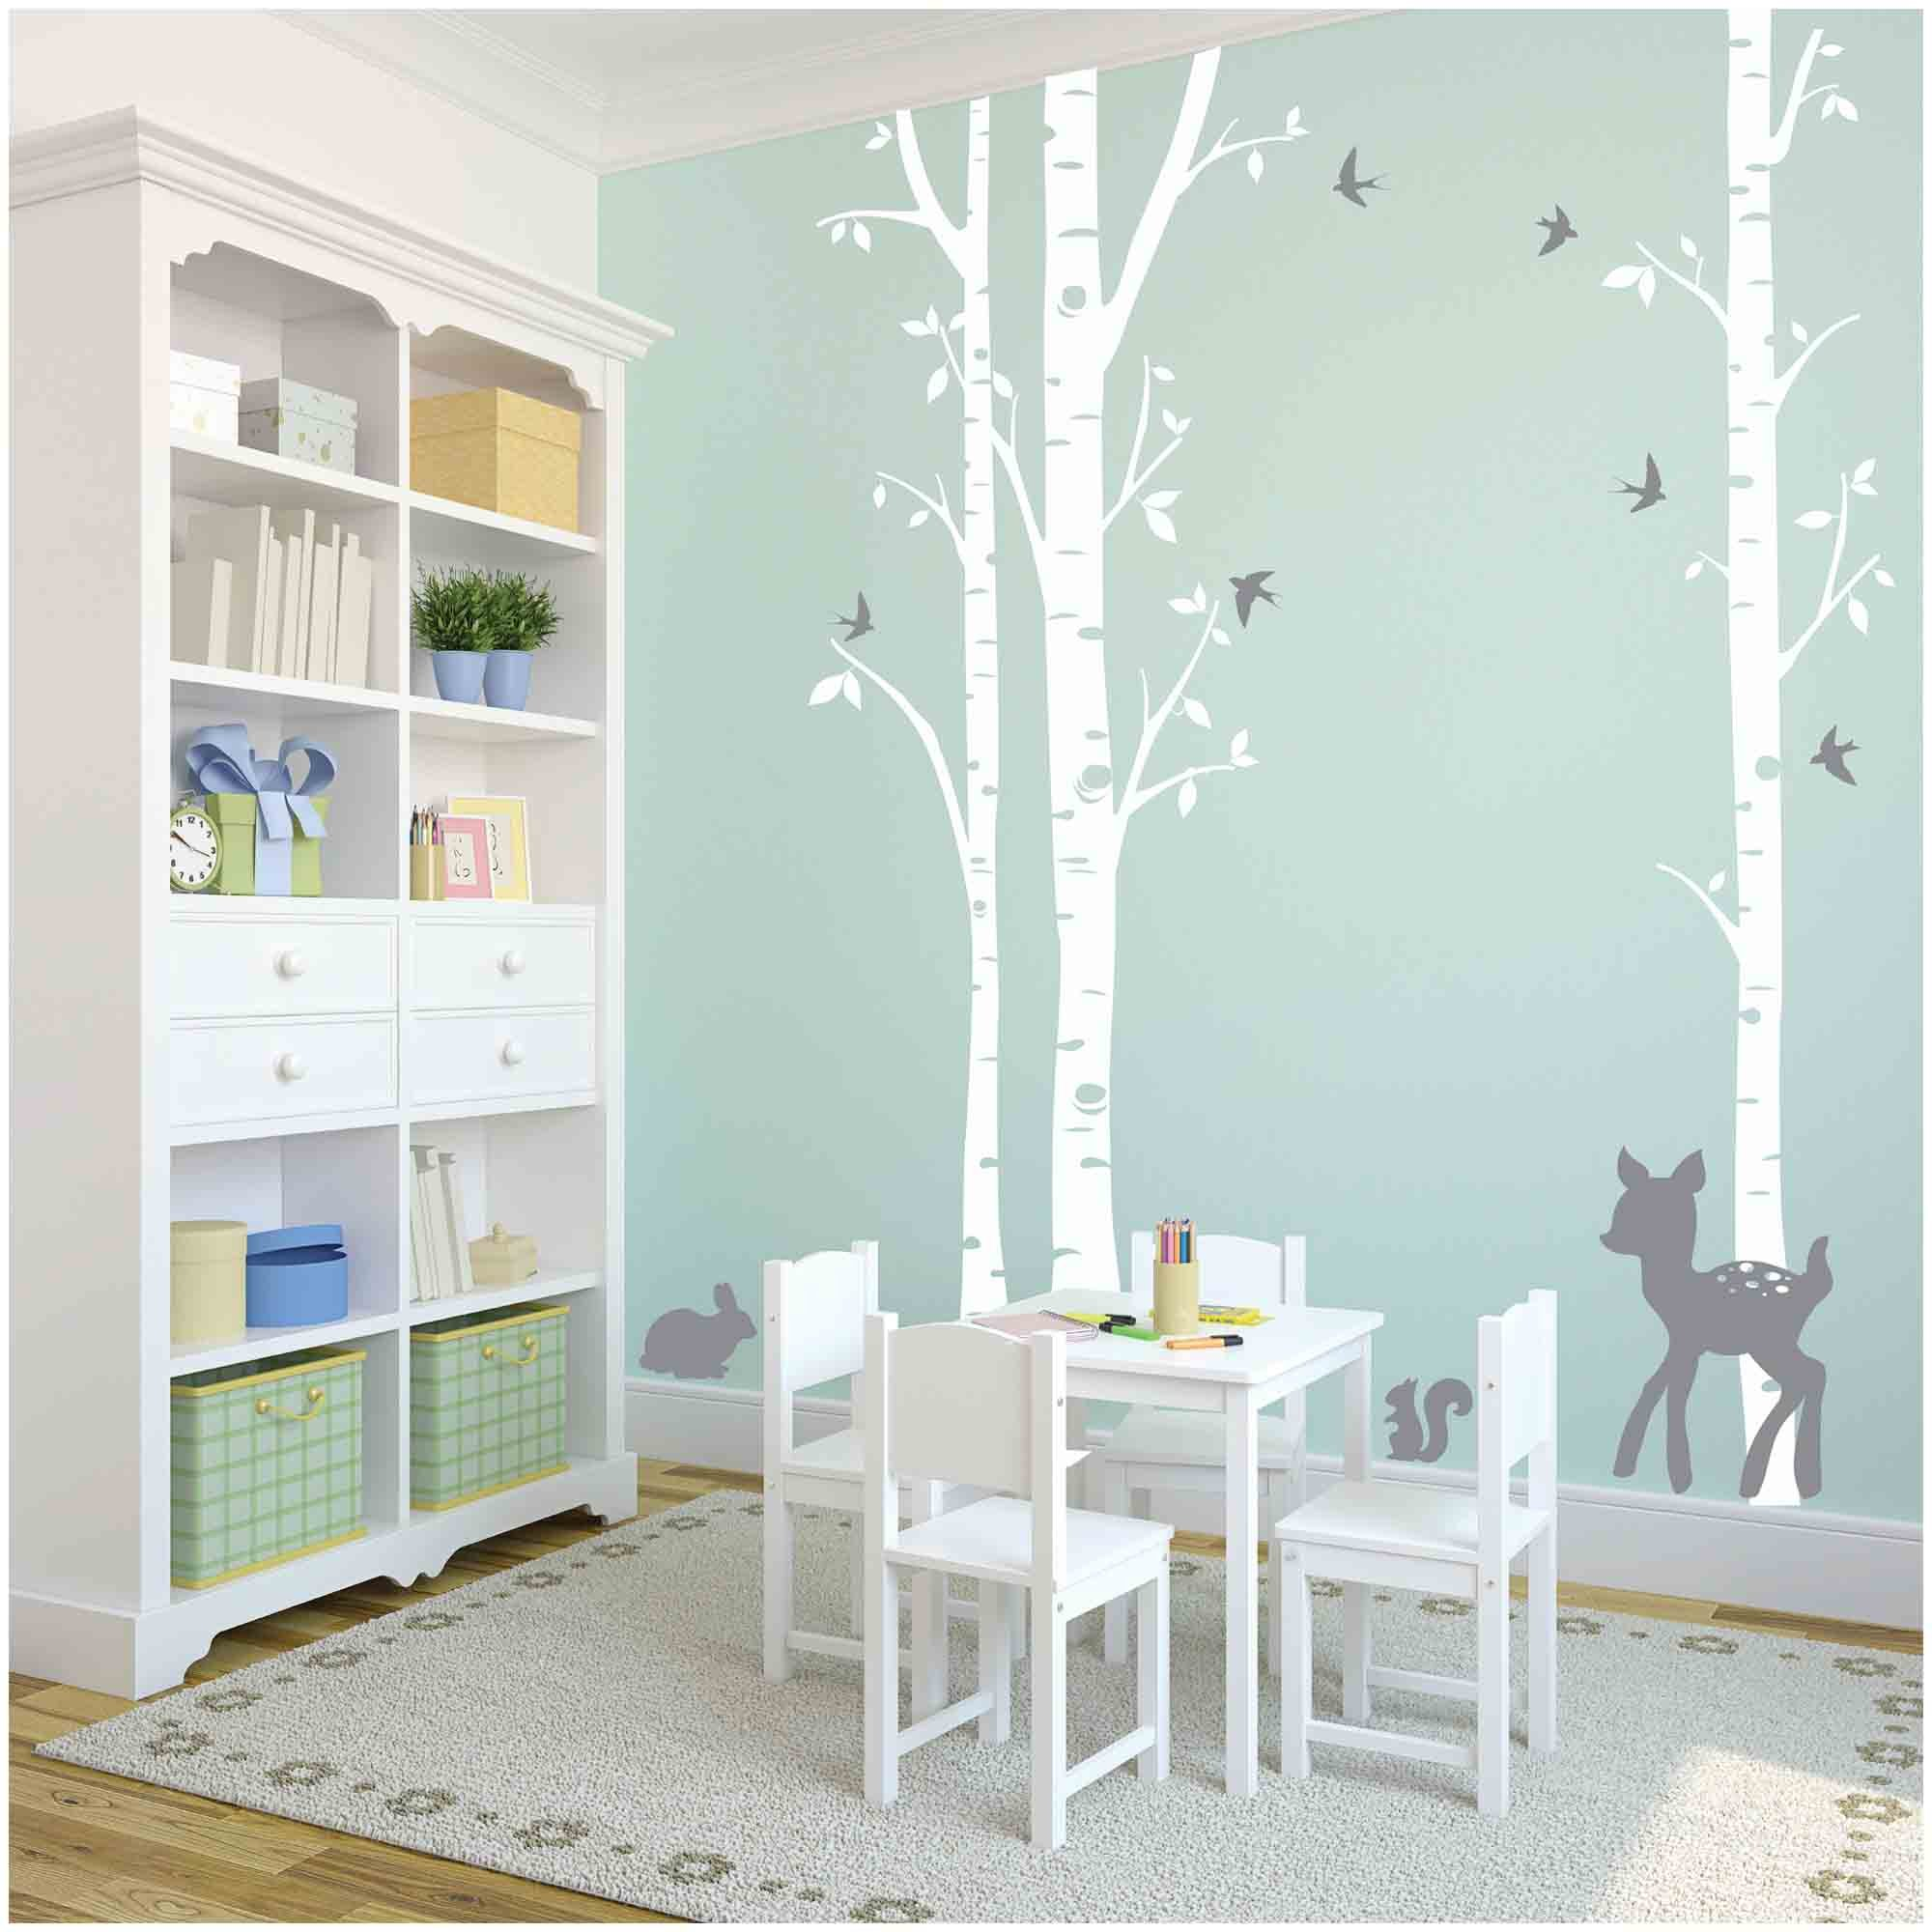 Owl Hills 3 White Birch Trees with Fawn, Bunny, Squirrel and Birds Wall Stickers, Grey by Owl Hills